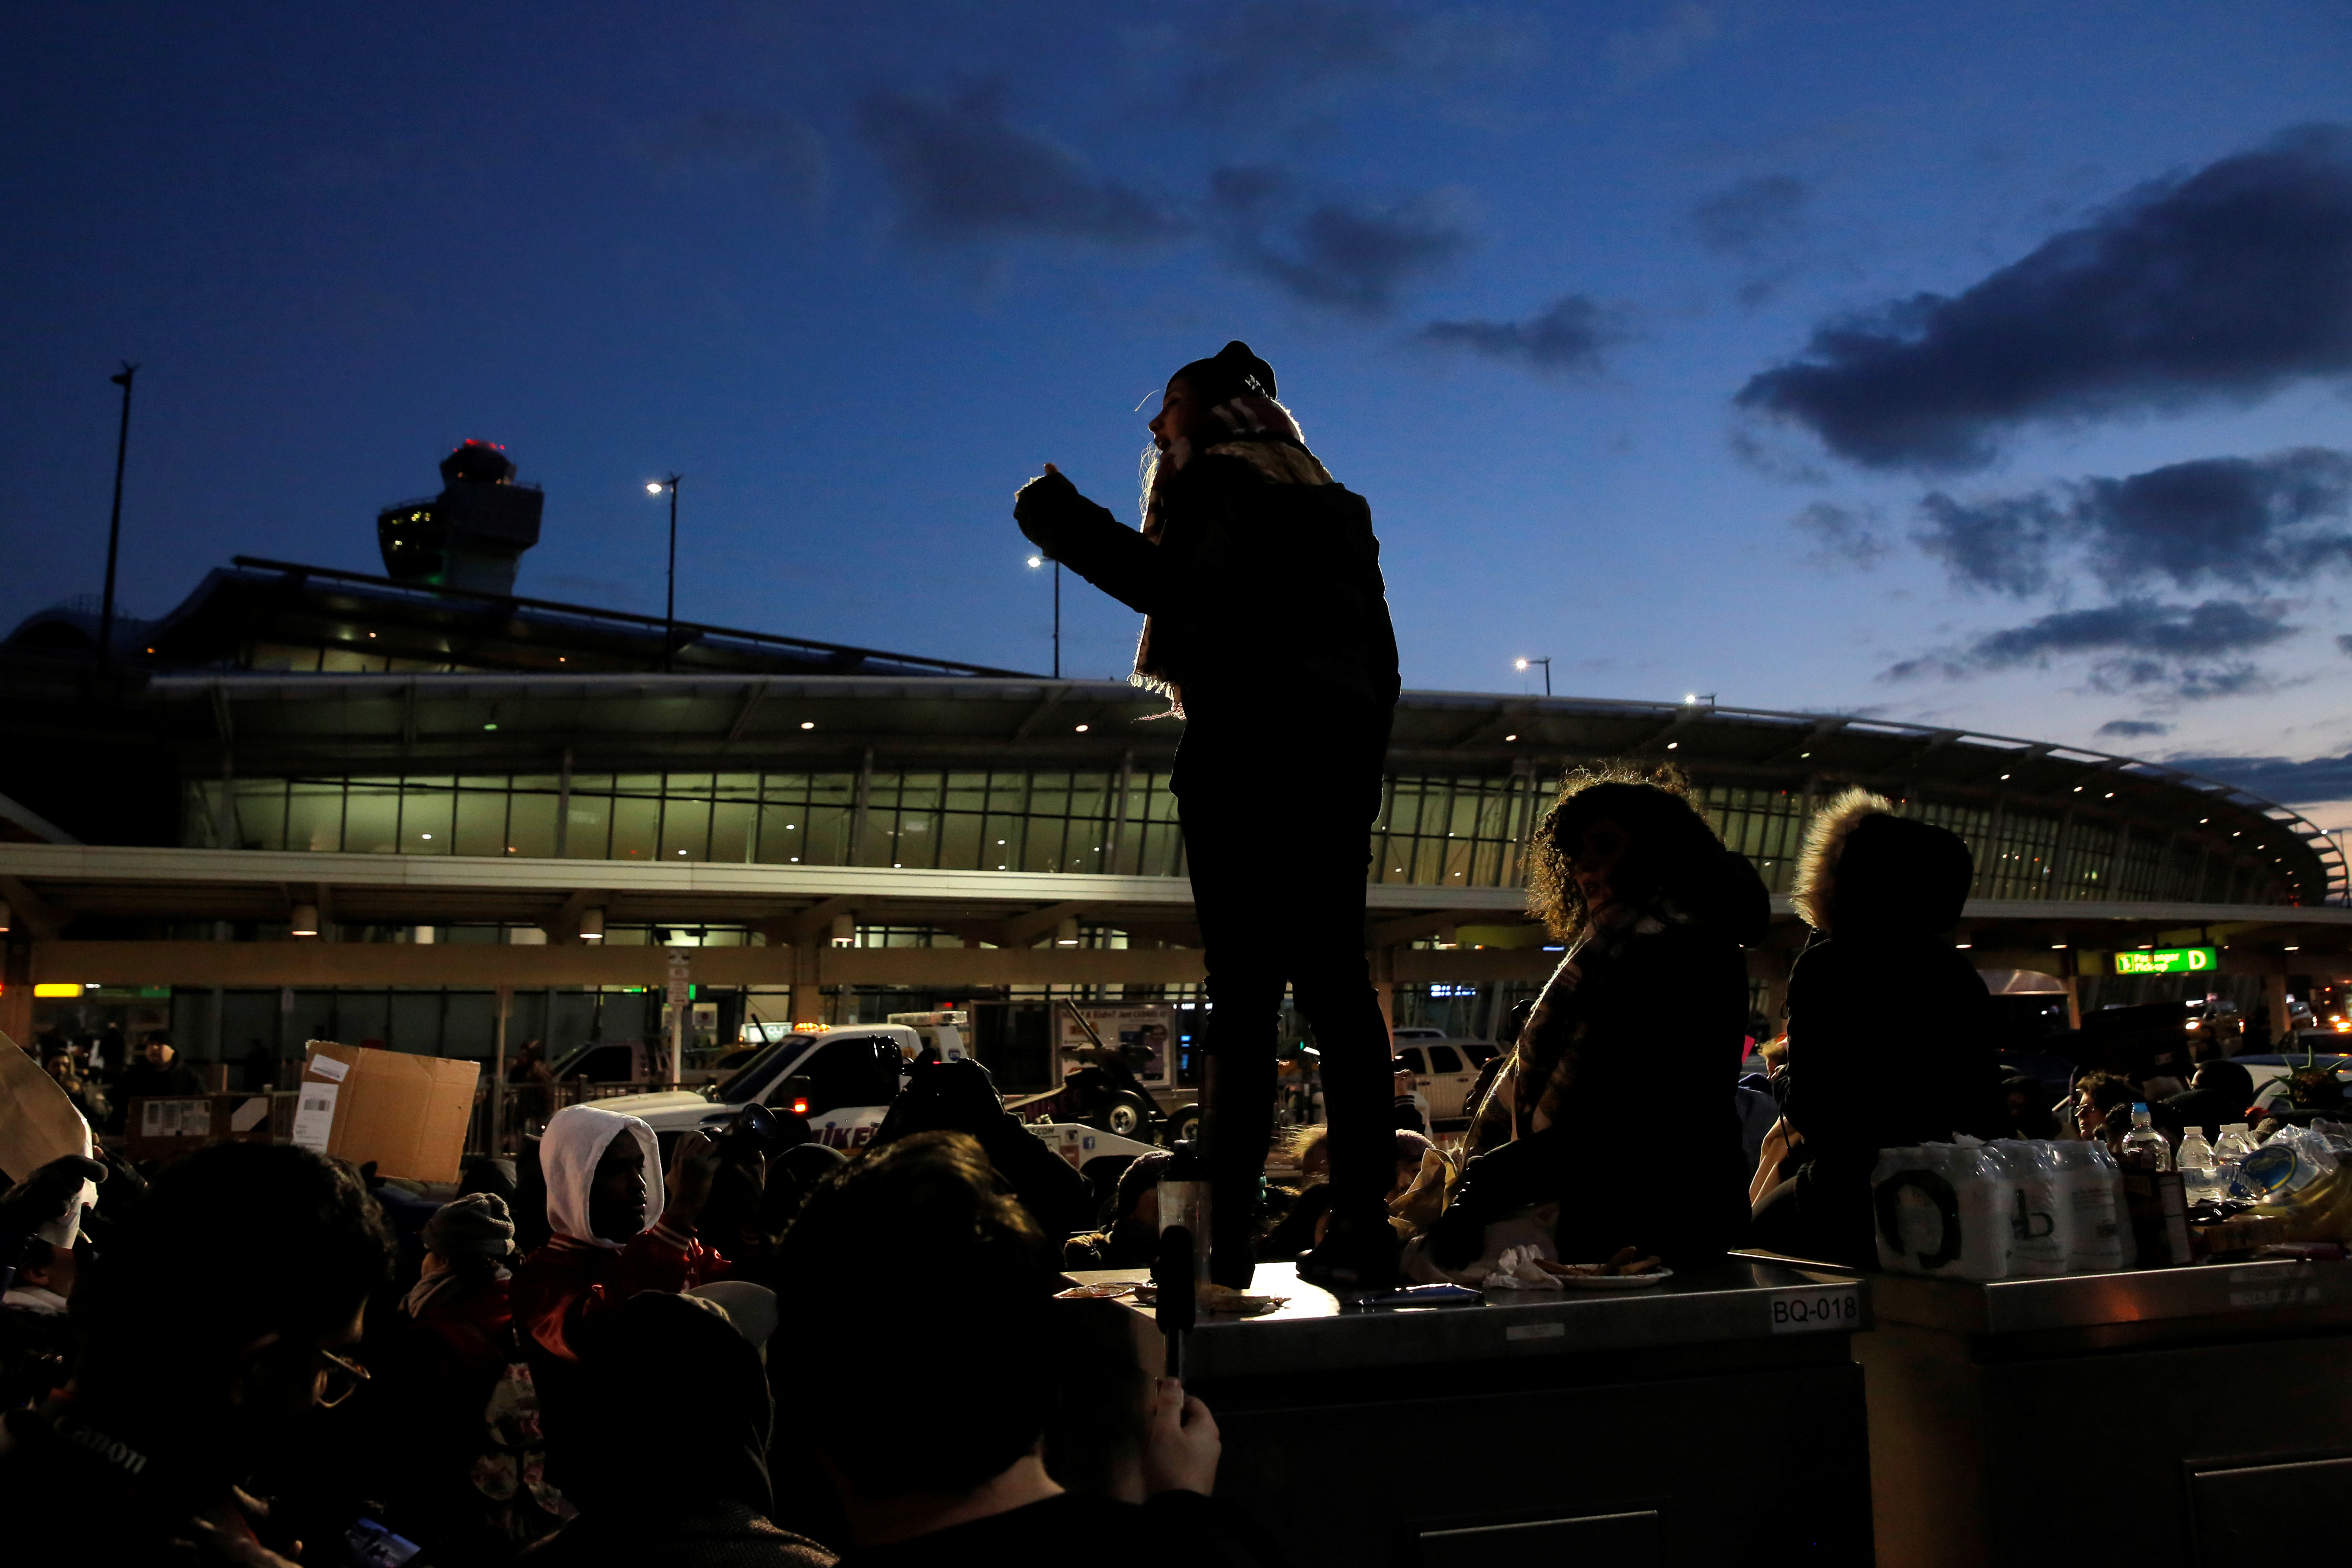 People gather at Terminal 4 during a protest against Donald Trump's travel ban at John F. Kennedy International Airport in Queens, New York, U.S.